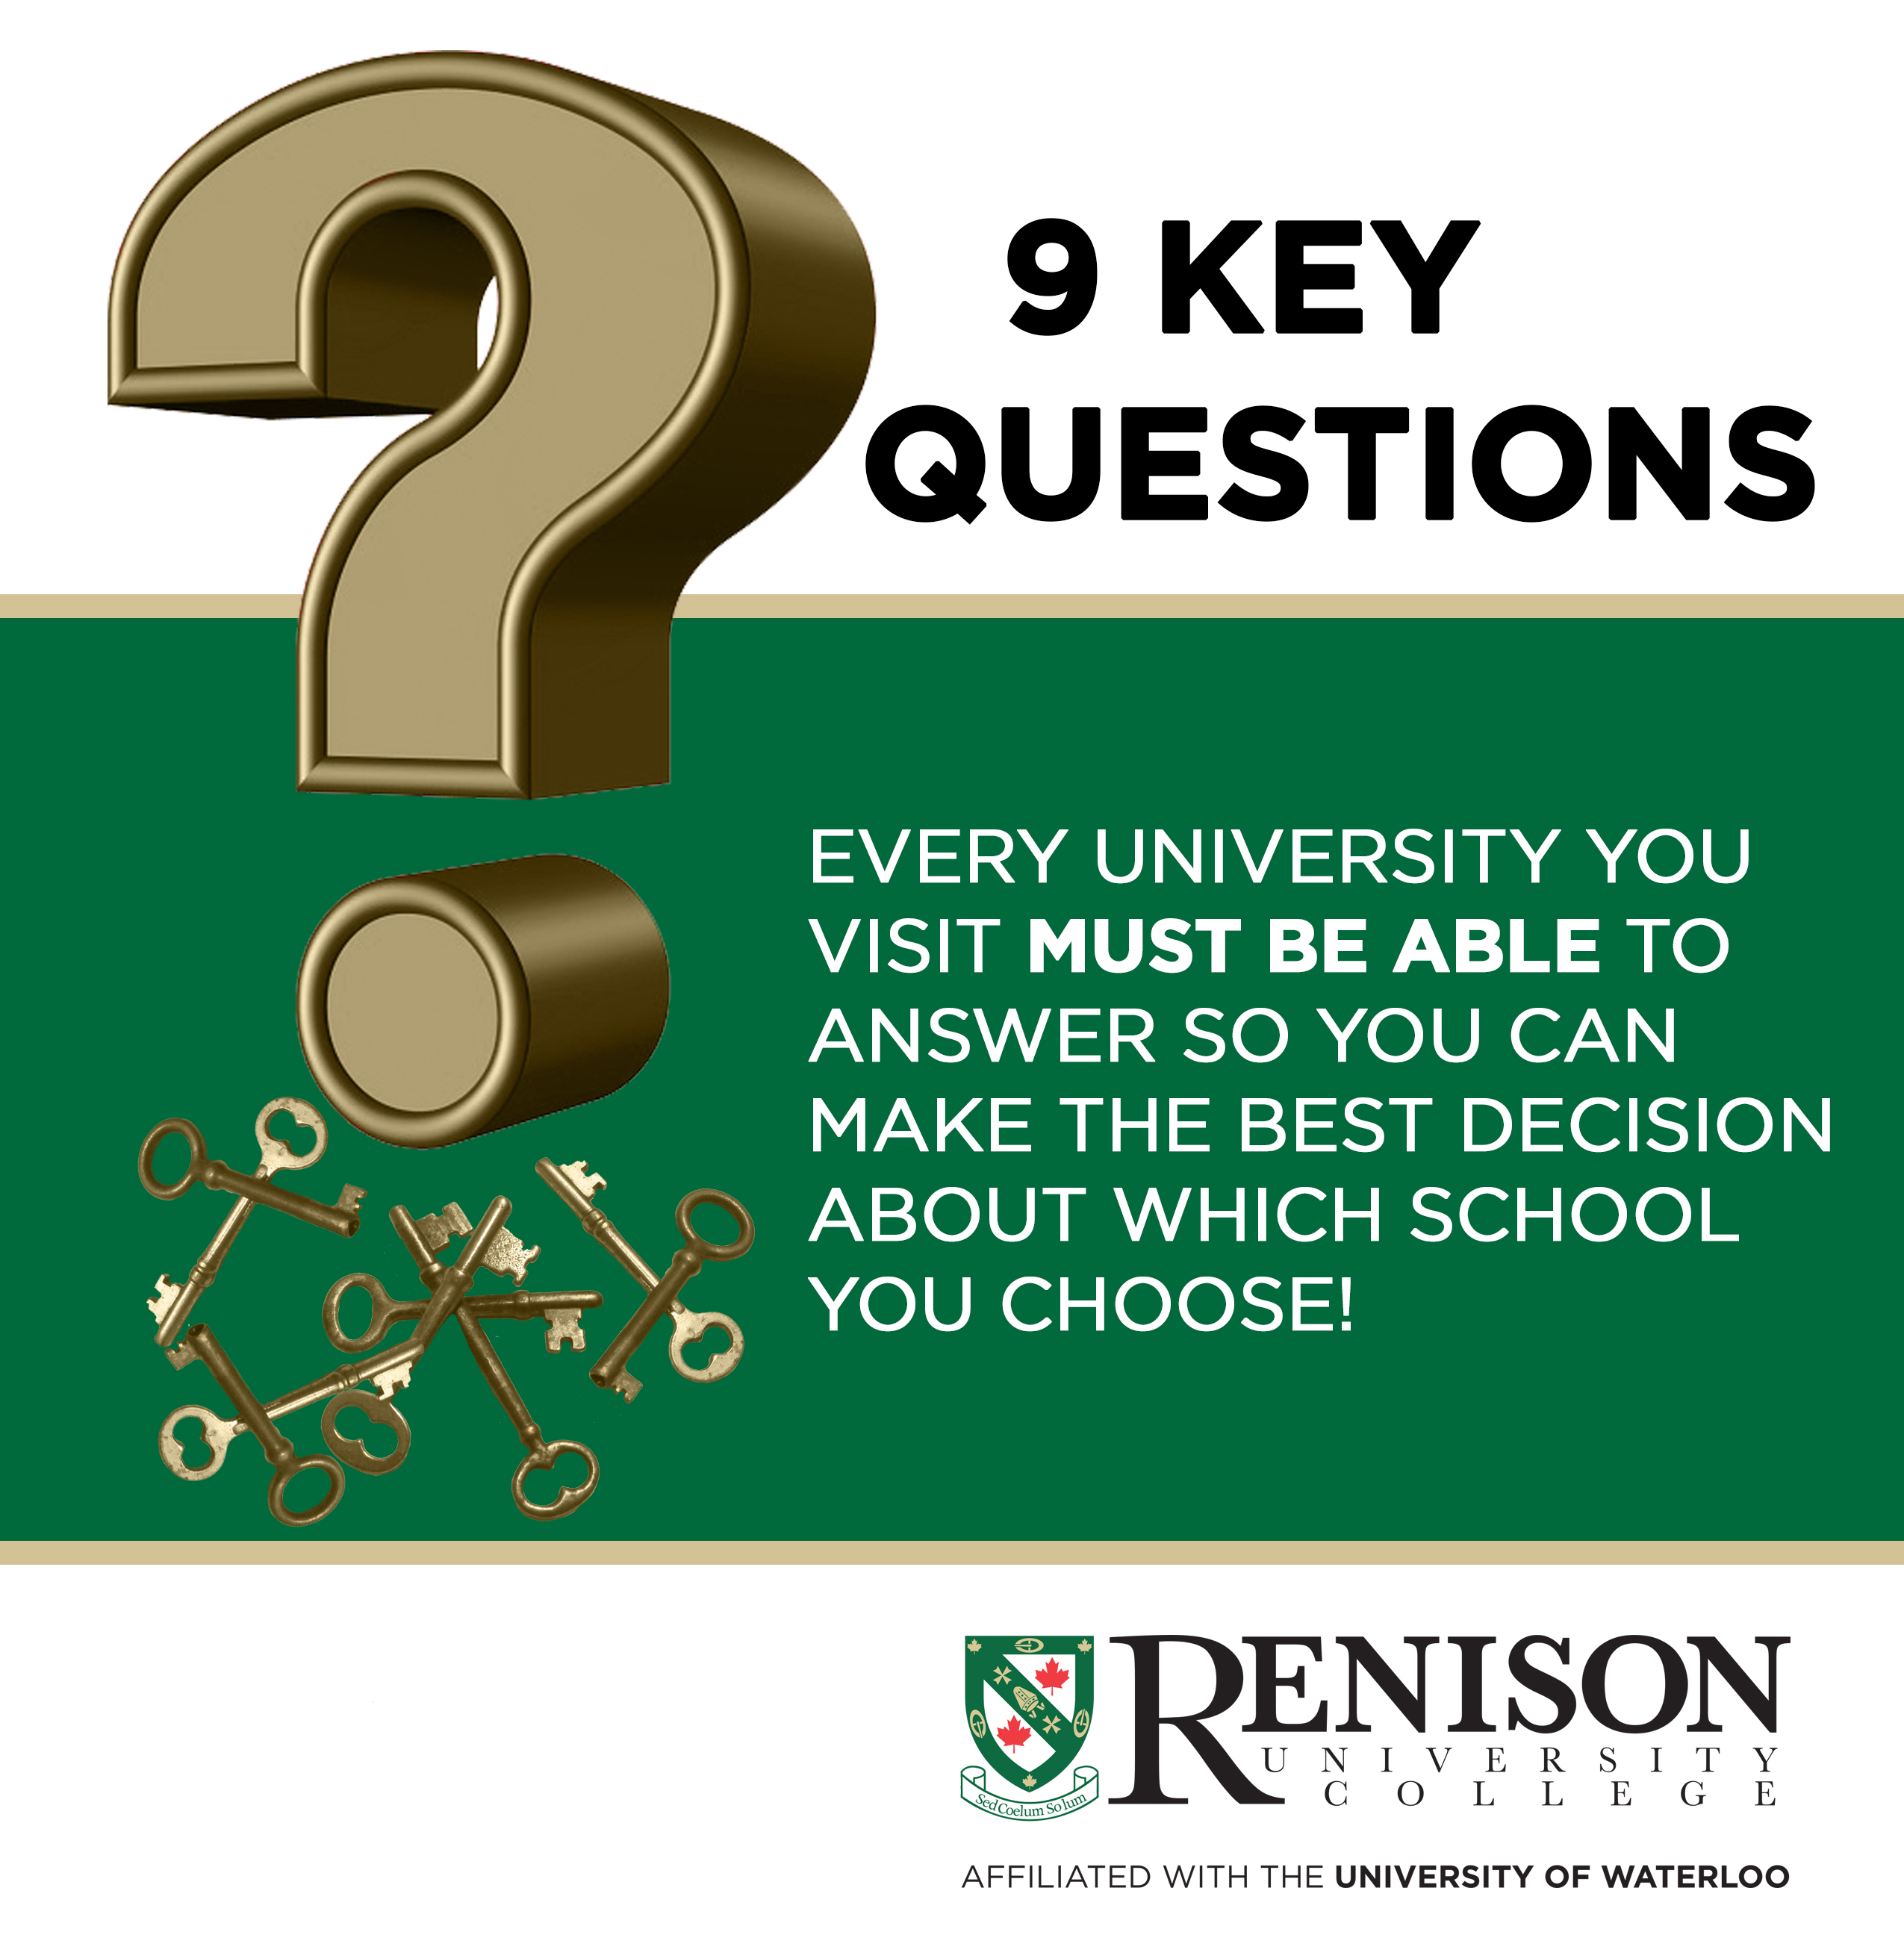 9 key questions every university must be able to answer so you can make the best decision about which school you choose!